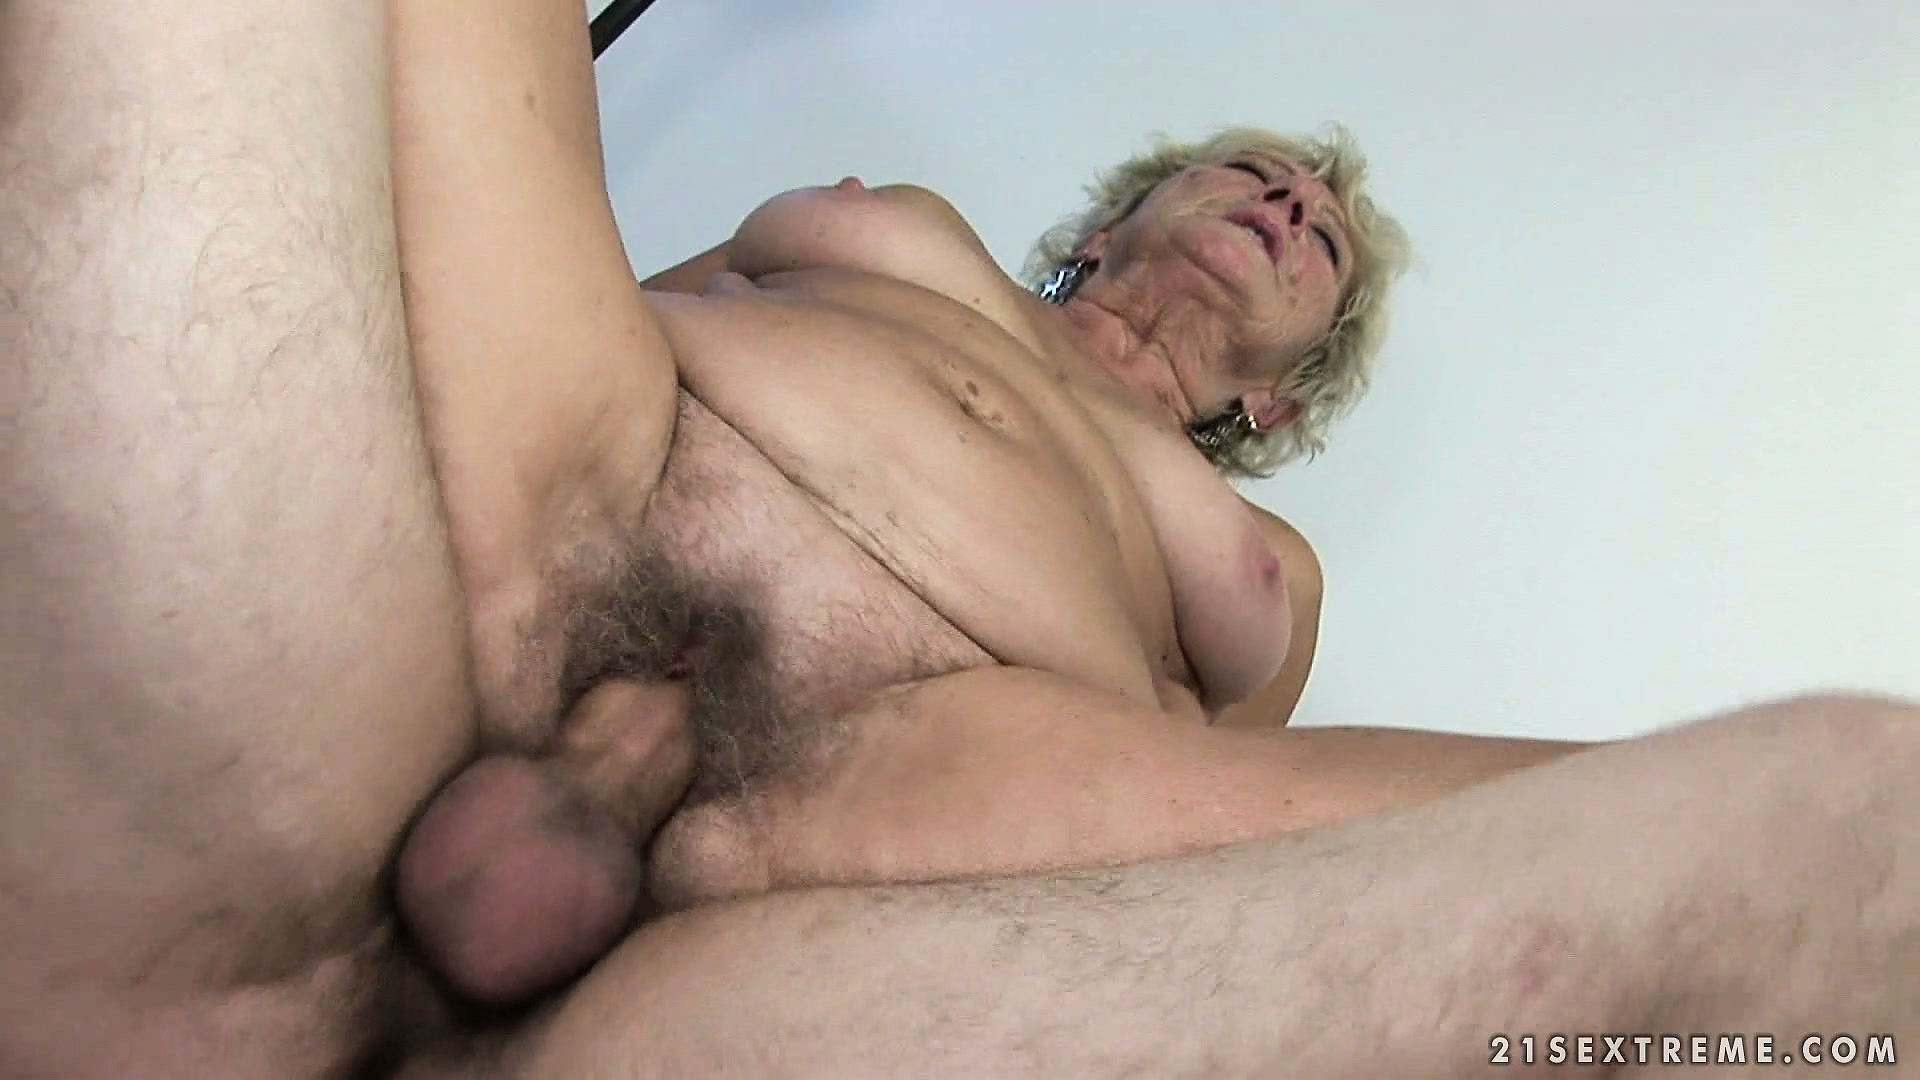 Granny ass fuck tube